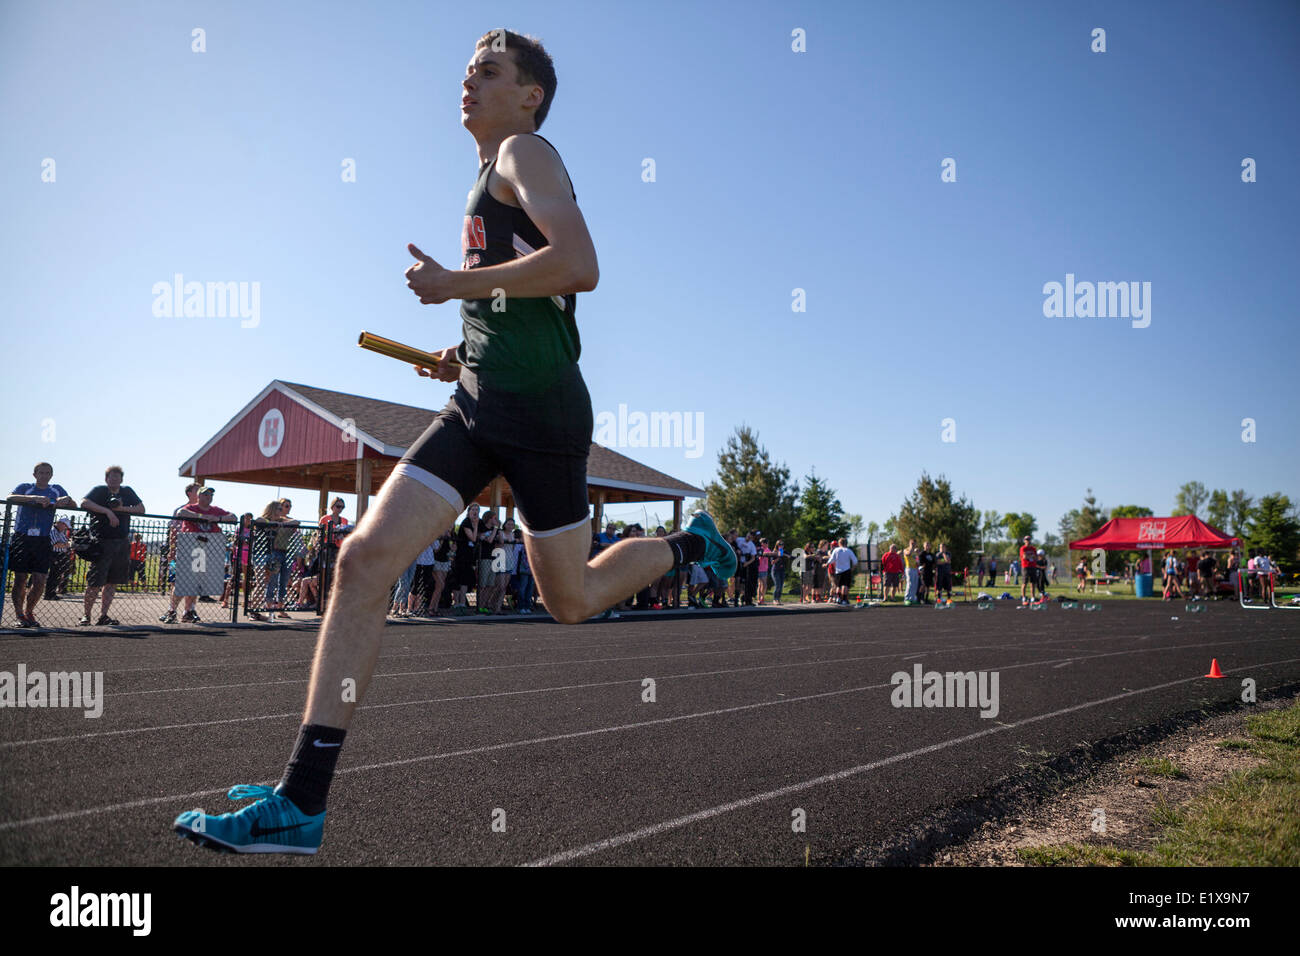 High school athletes compete in a track and filed meet in Milwaukee, Wisconsin, USA. - Stock Image